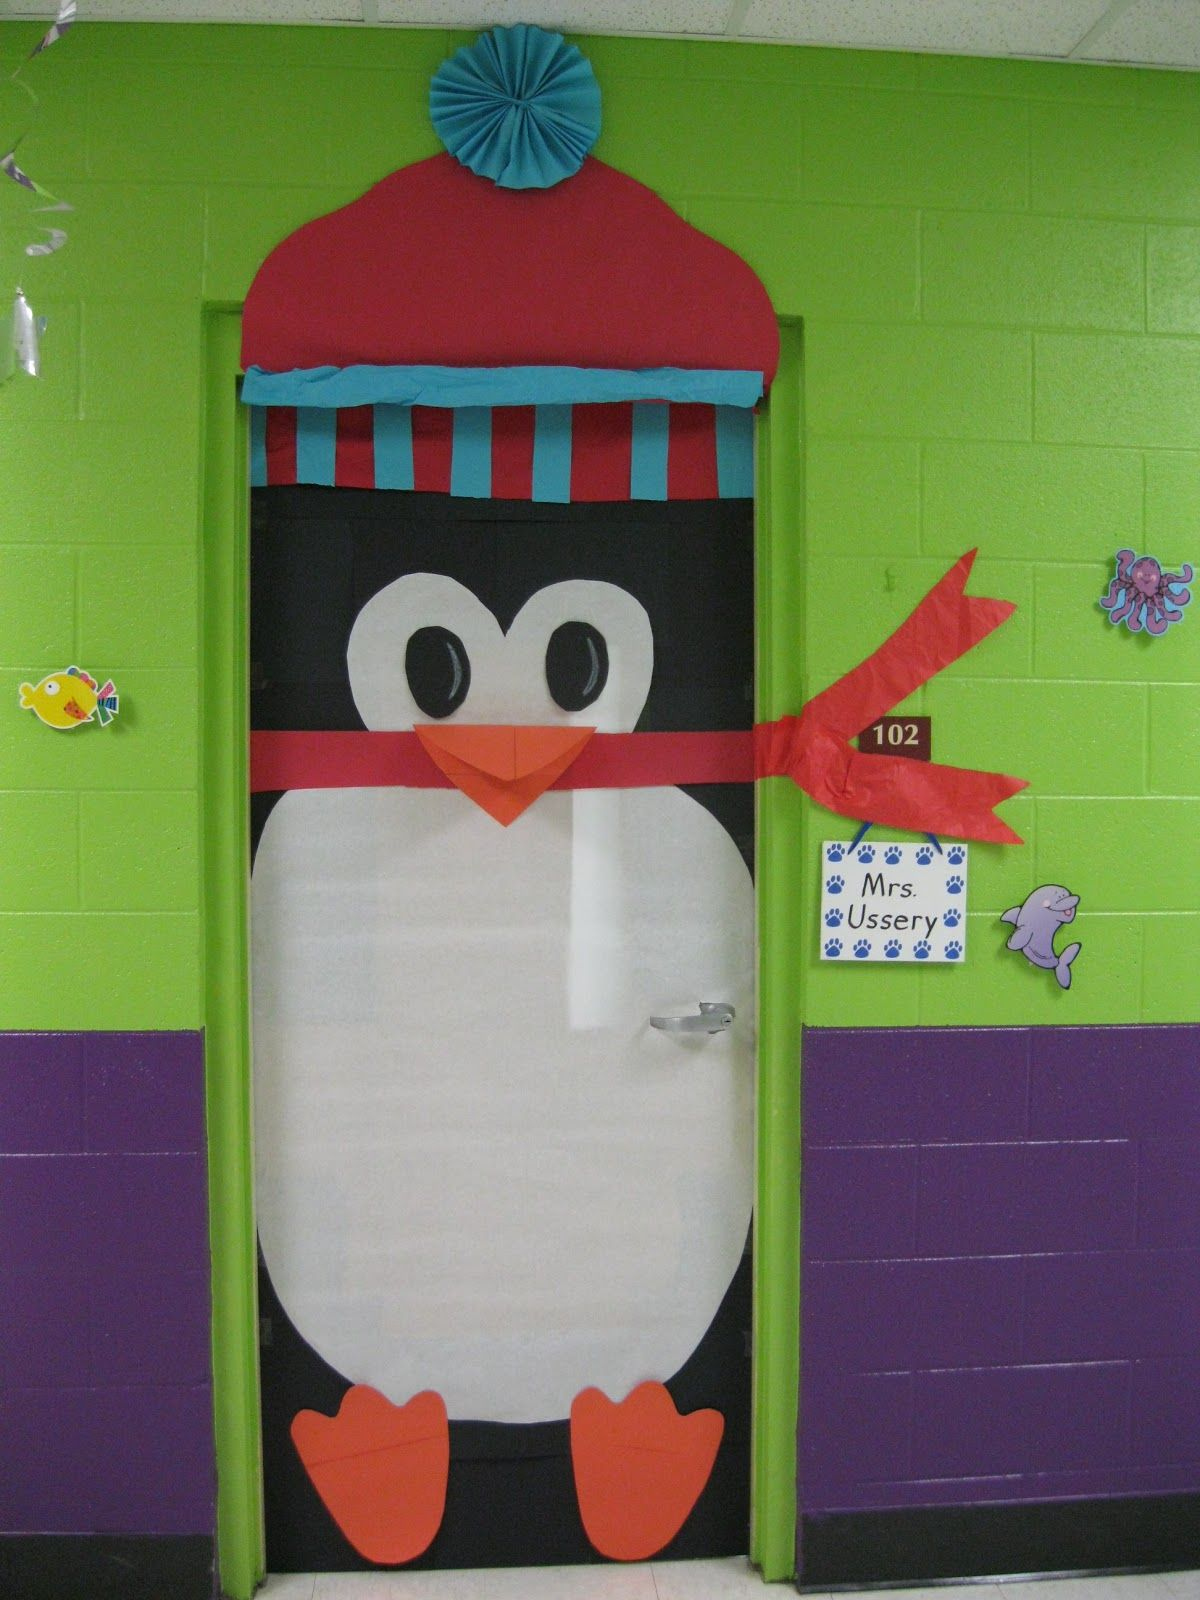 A Penguin Is A Cute Idea For A Winter Classroom Door Display And The Colors  In This One Make It Very Eye Catching. (And Oh What Would I Give To Have ... Part 38